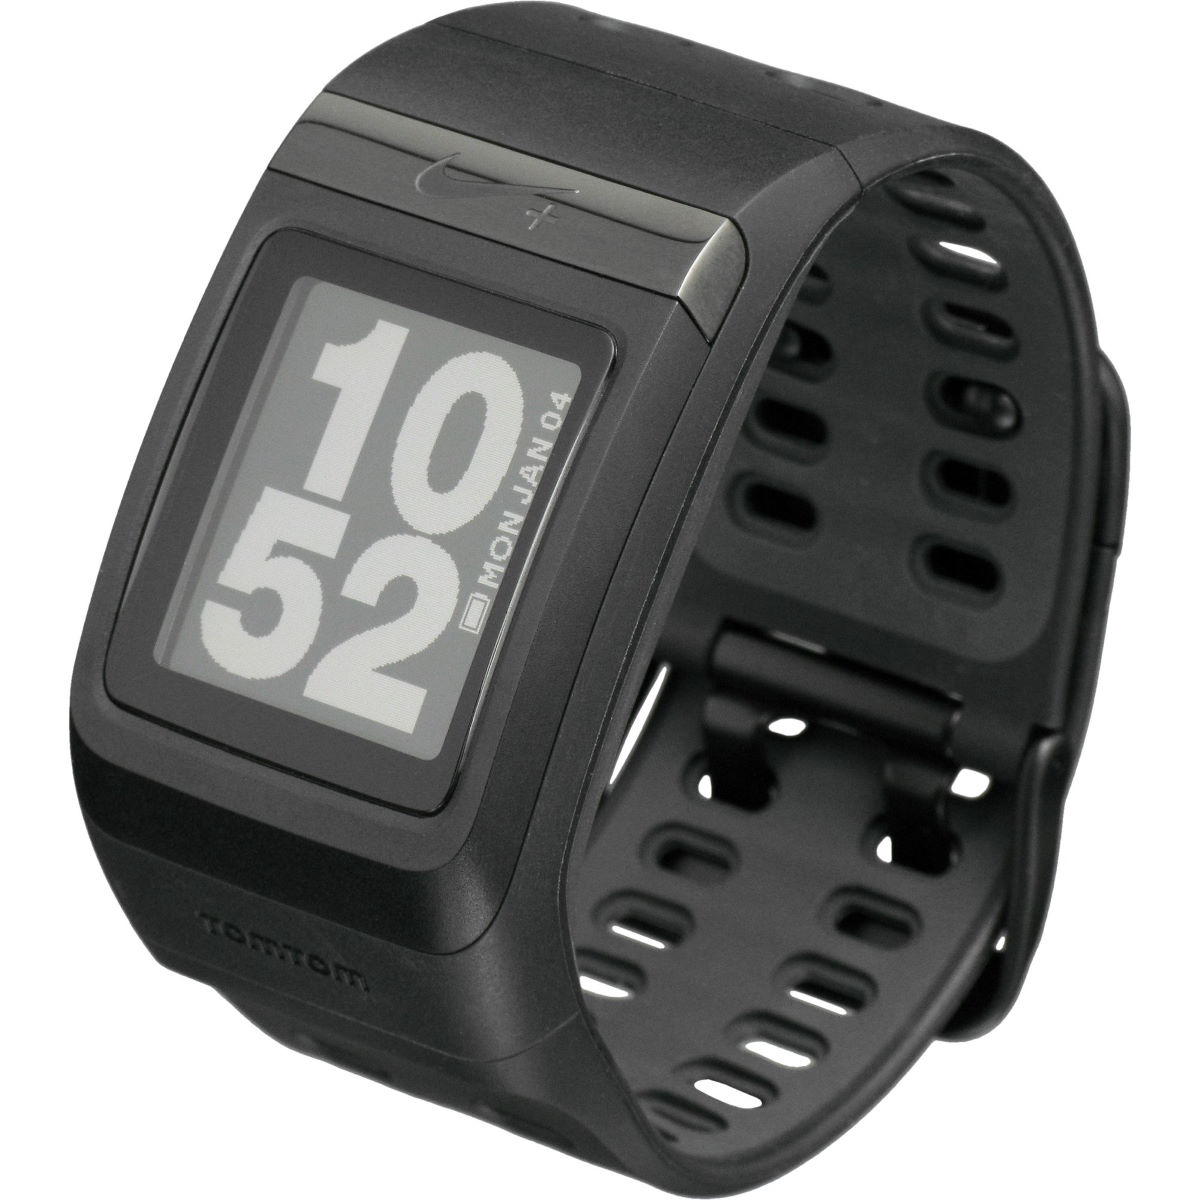 Nike + Sports Watch GPS